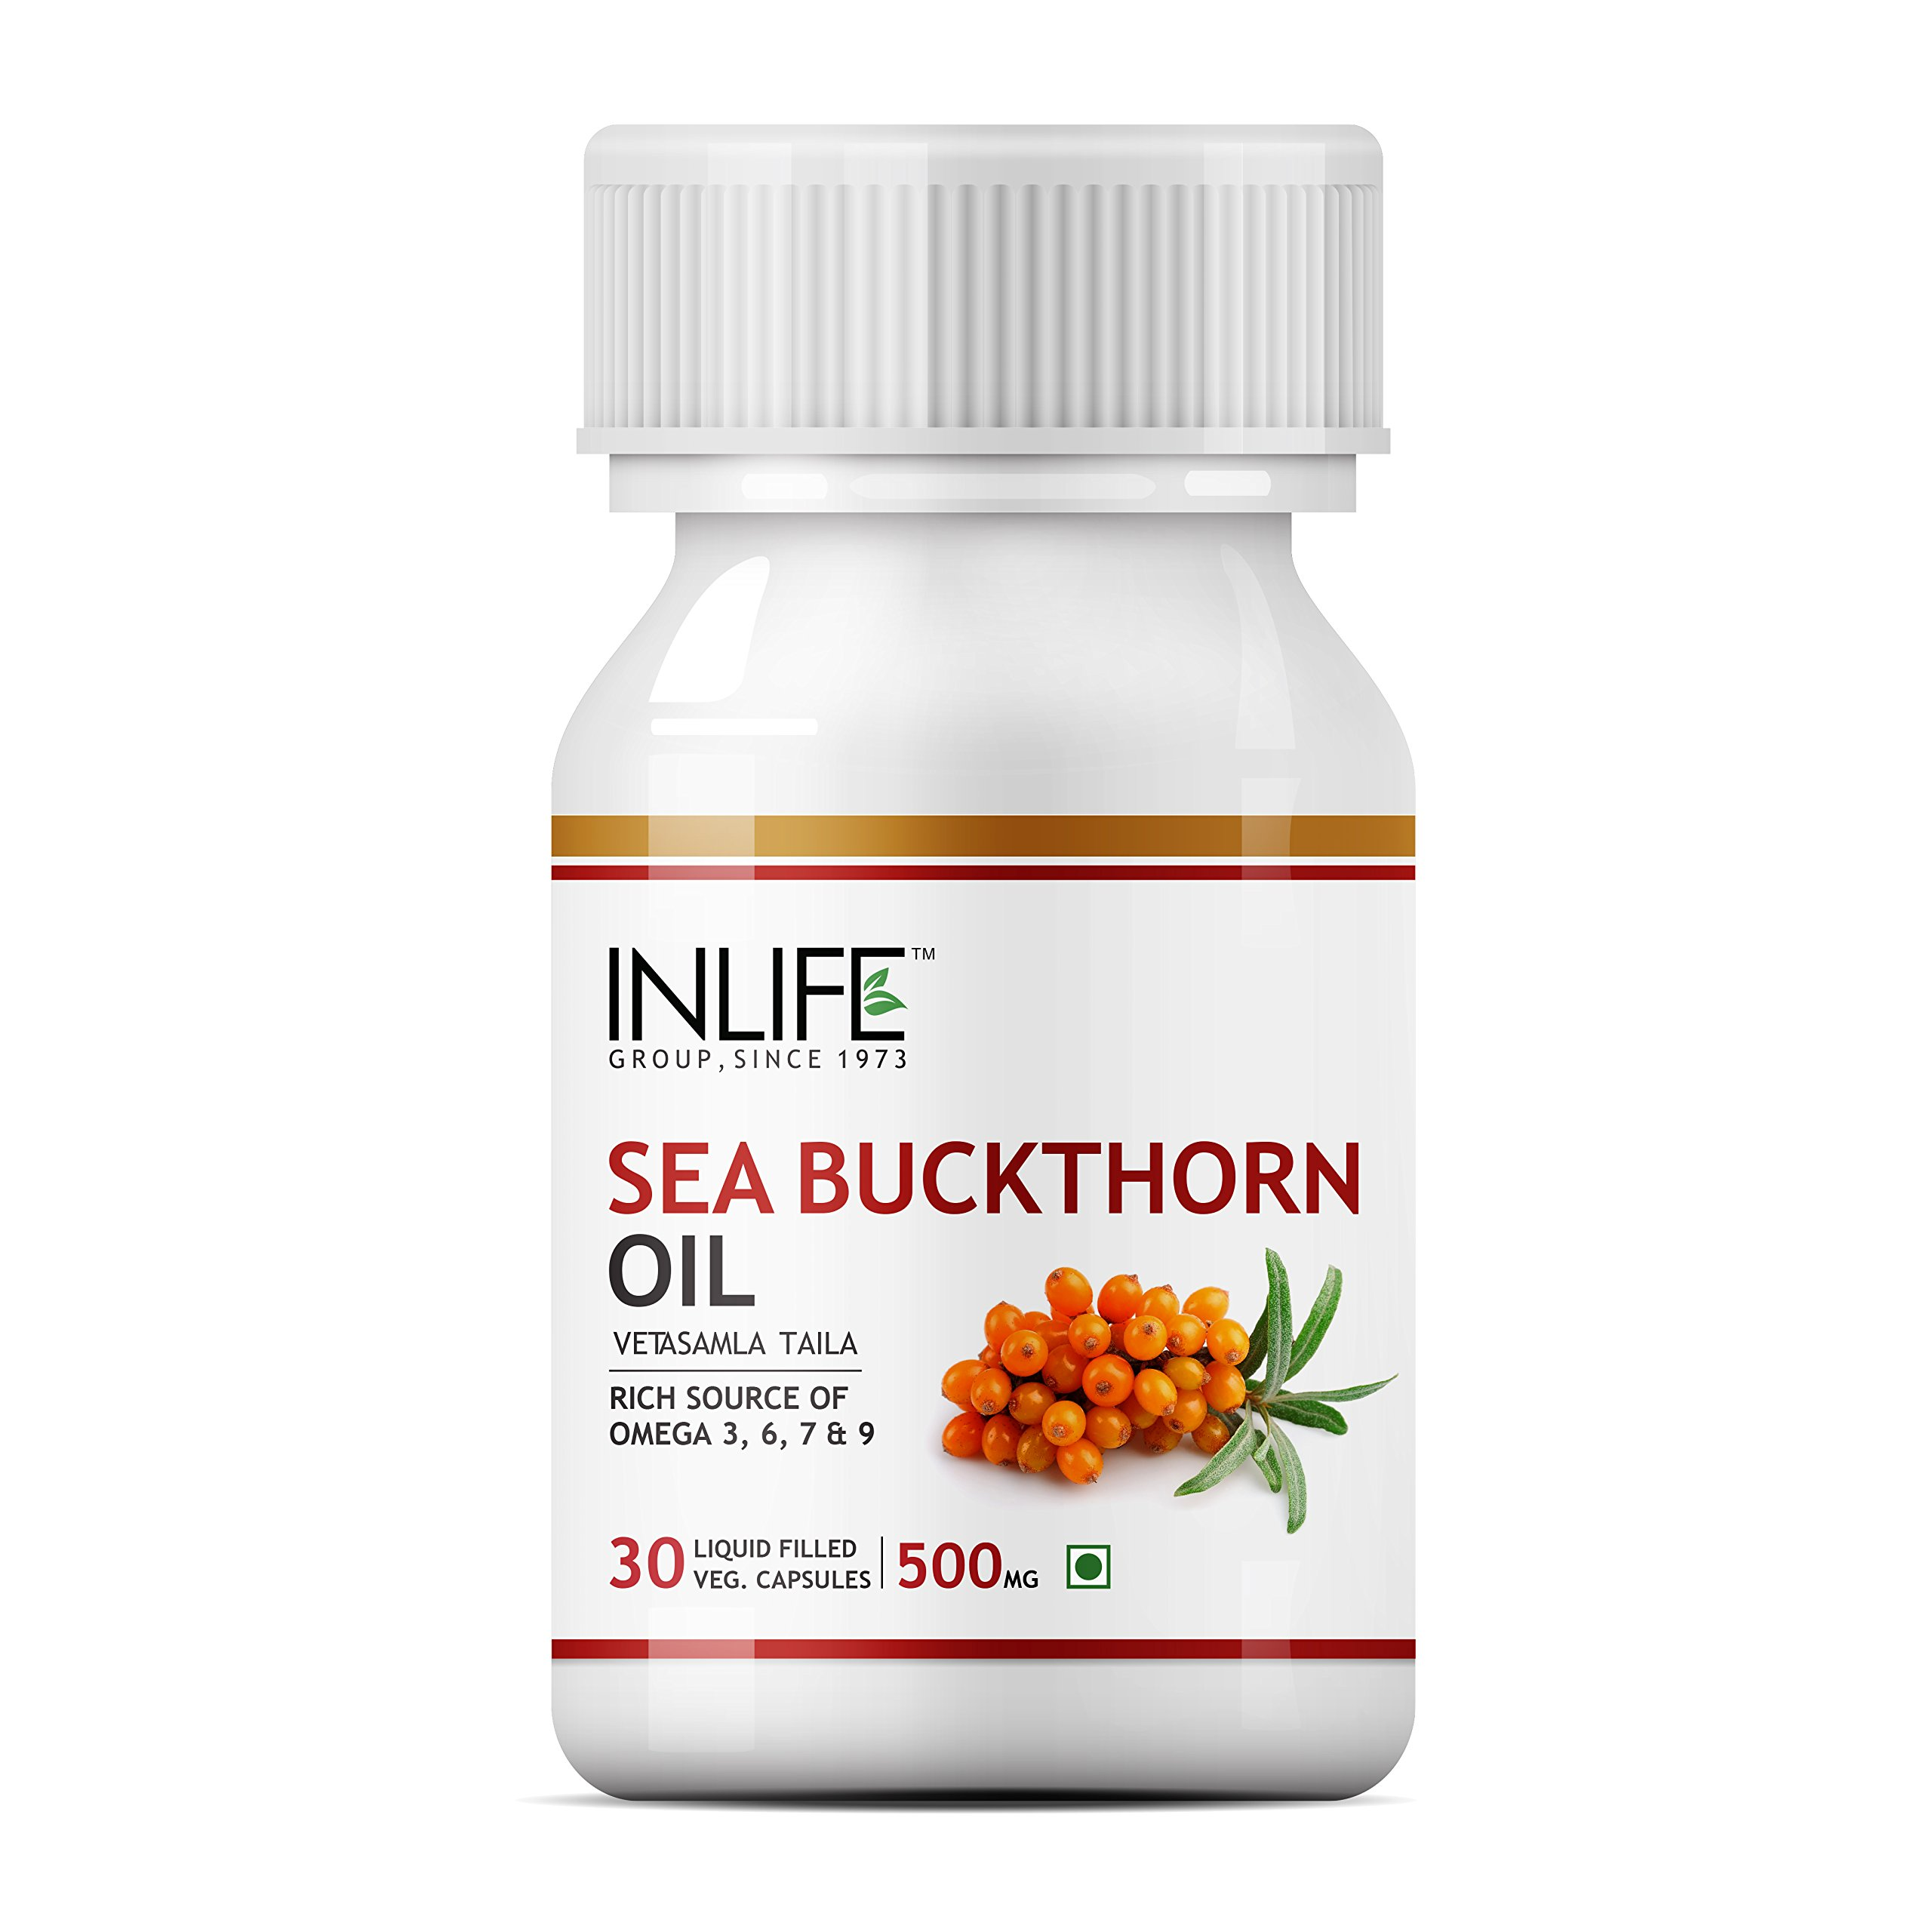 Inlife Sea Buckthorn Seed Oil 500mg Omega 3 6 7 9 30 Vegetarian